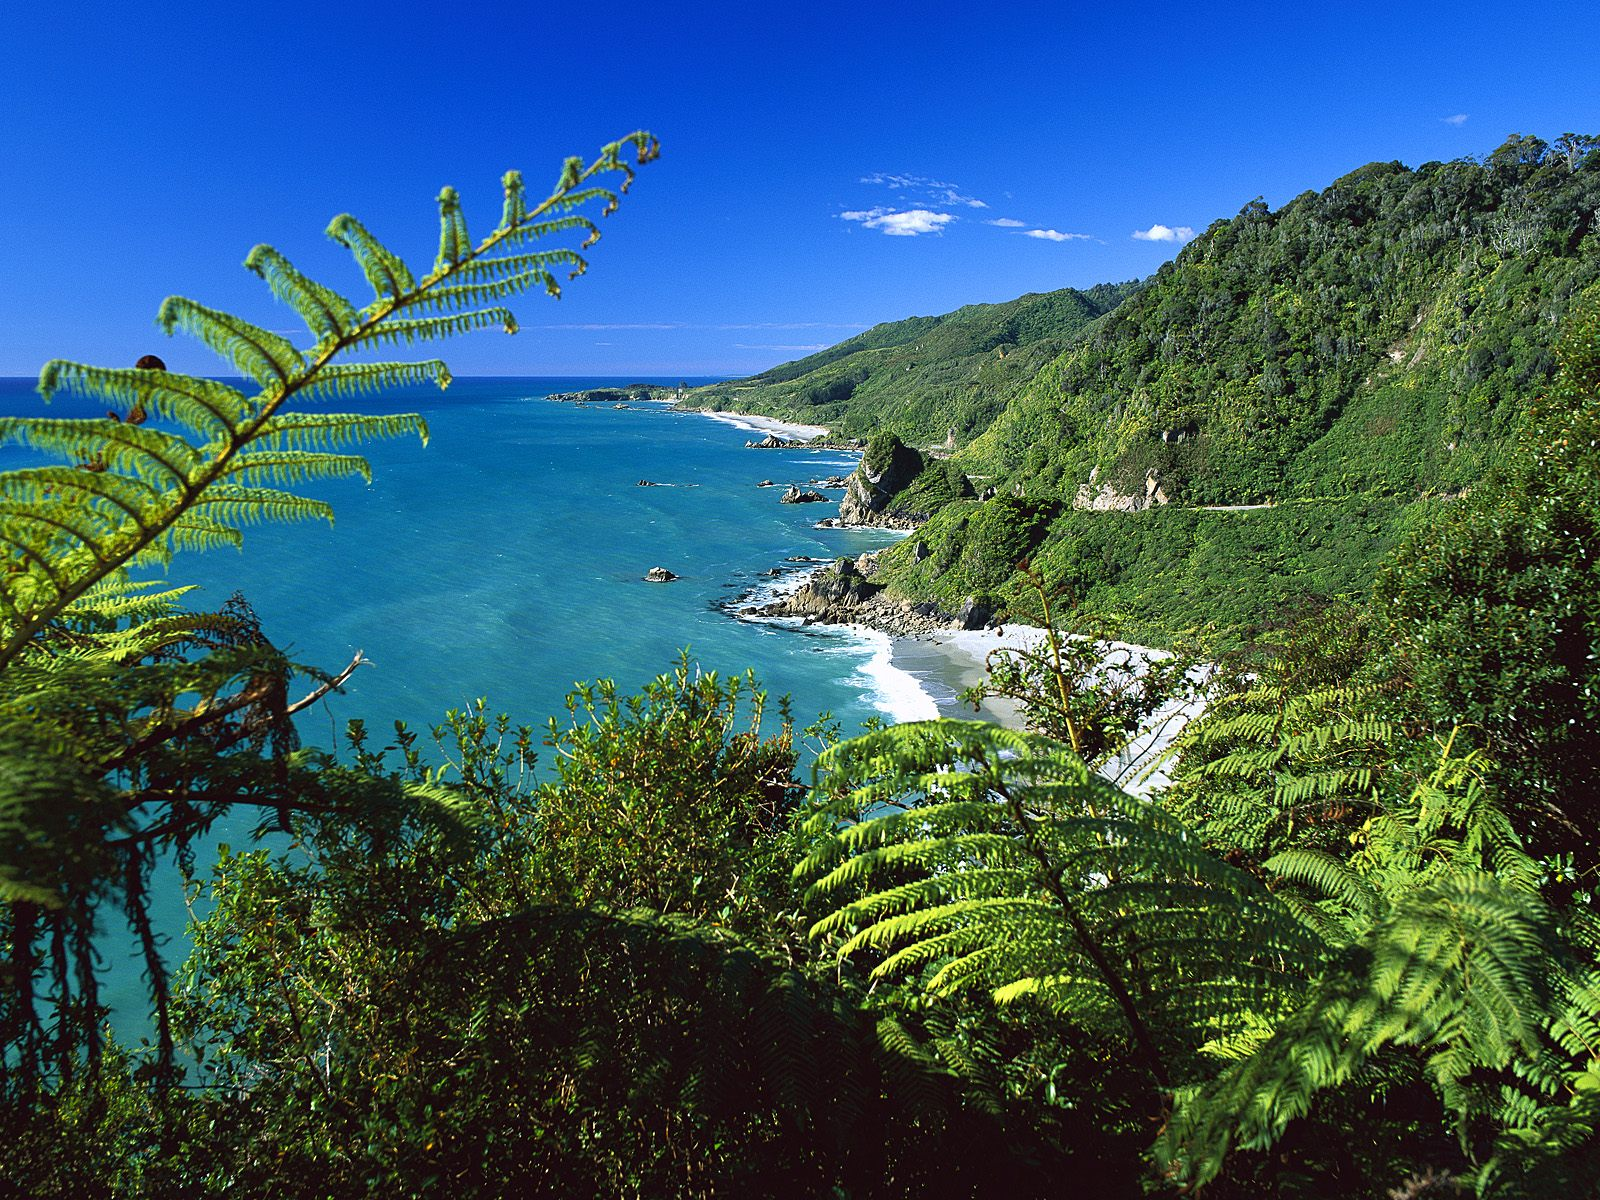 http://1.bp.blogspot.com/_E8qkZqRfIRg/TKsLKC0D4YI/AAAAAAAAEQY/r9ZvvItZ5DY/s1600/Paparoa+National+Park,+South+Island,+New+Zealand.jpg